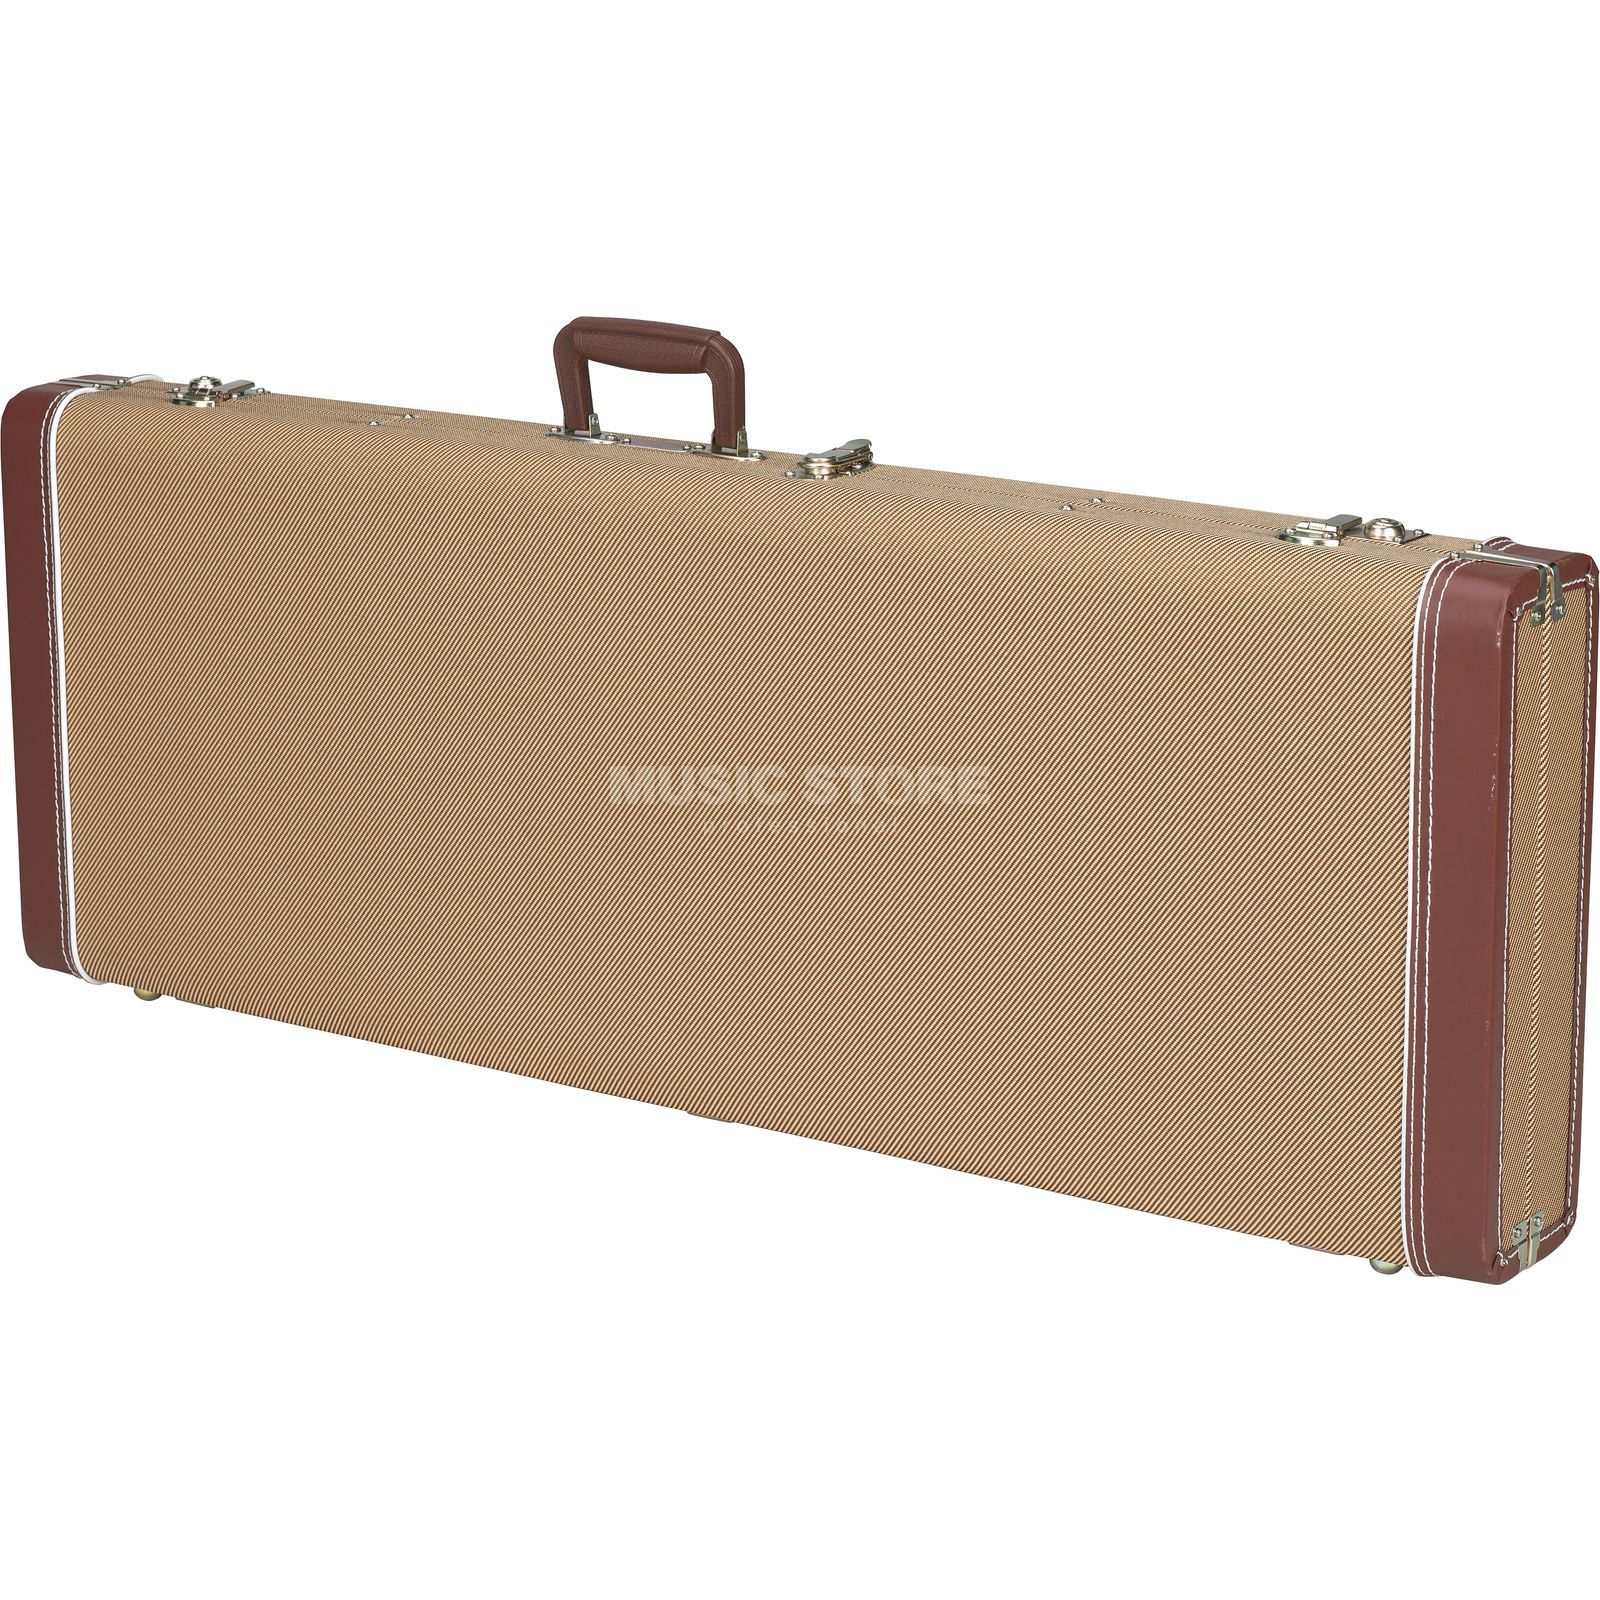 Fender Case Pro Series P+J-Bass Tweed Woodcase Tweed Product Image